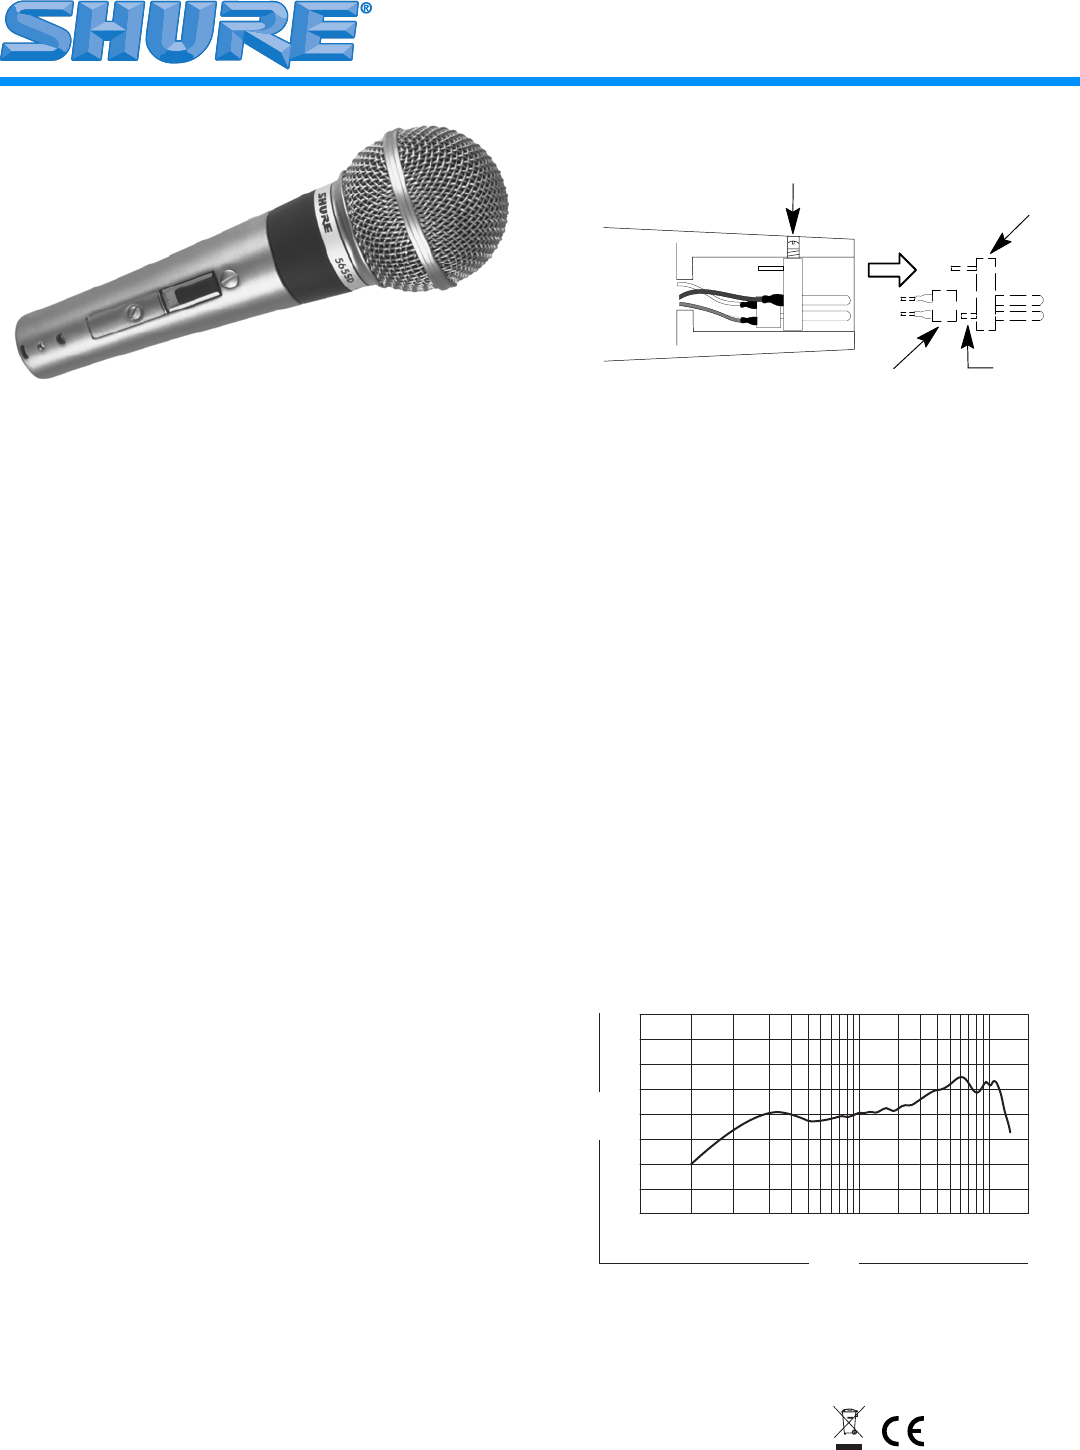 Shure Microphone 565SD User Guide | ManualsOnline.com